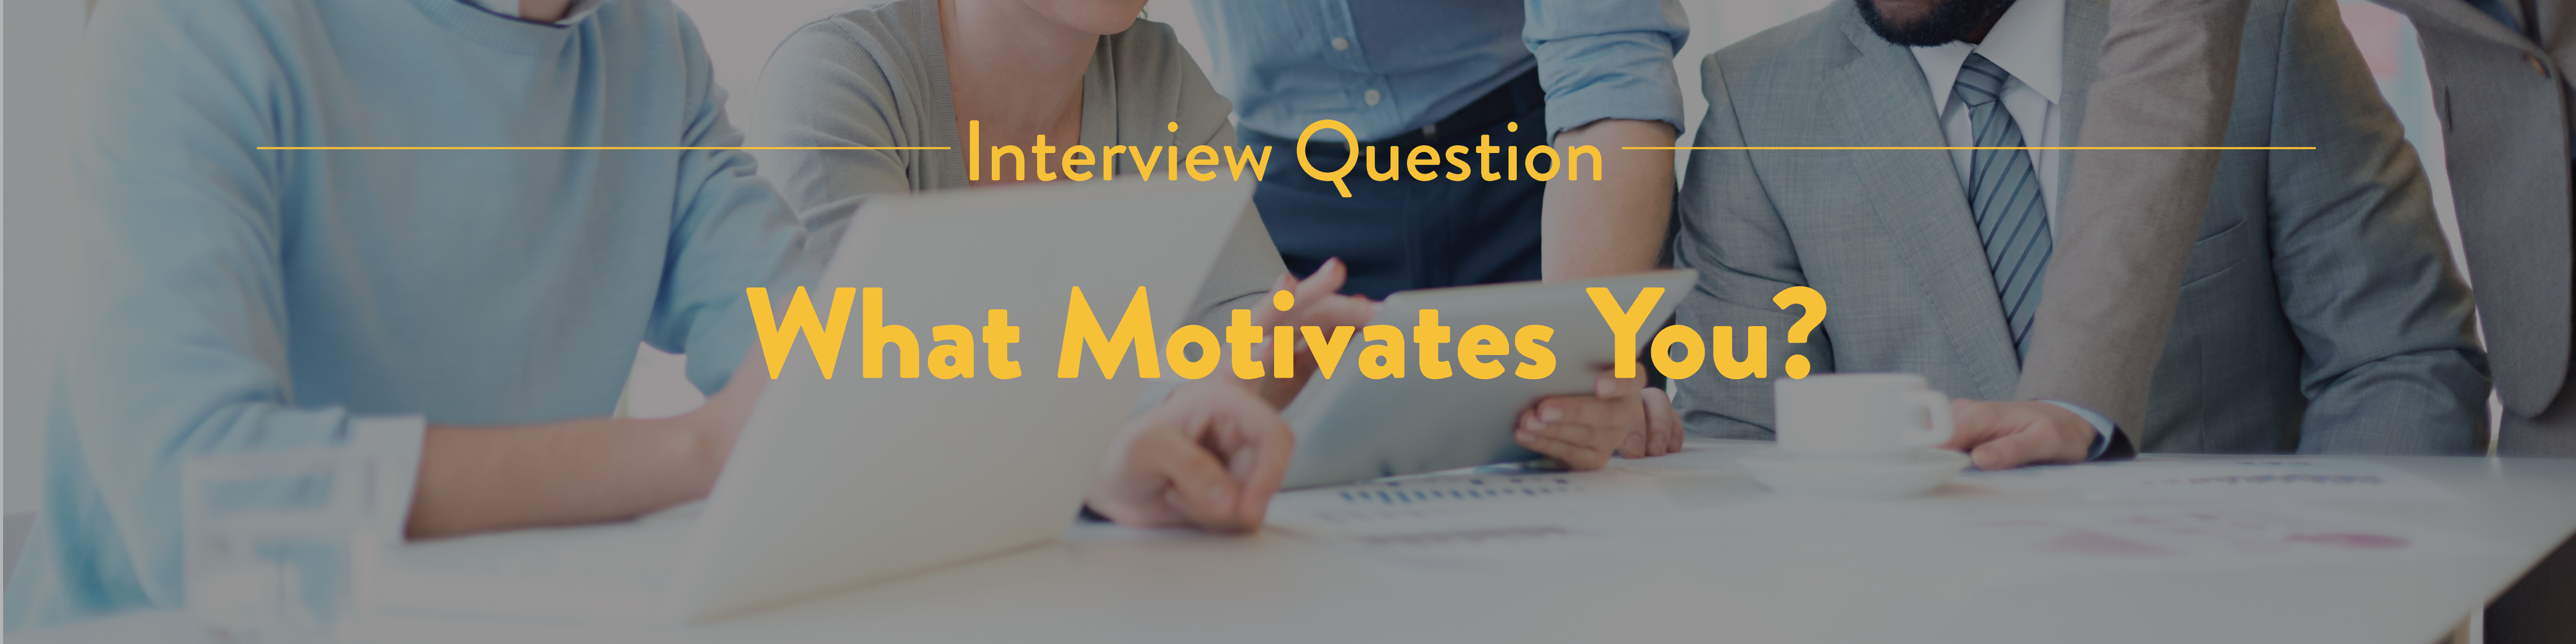 What Motivates You Interview